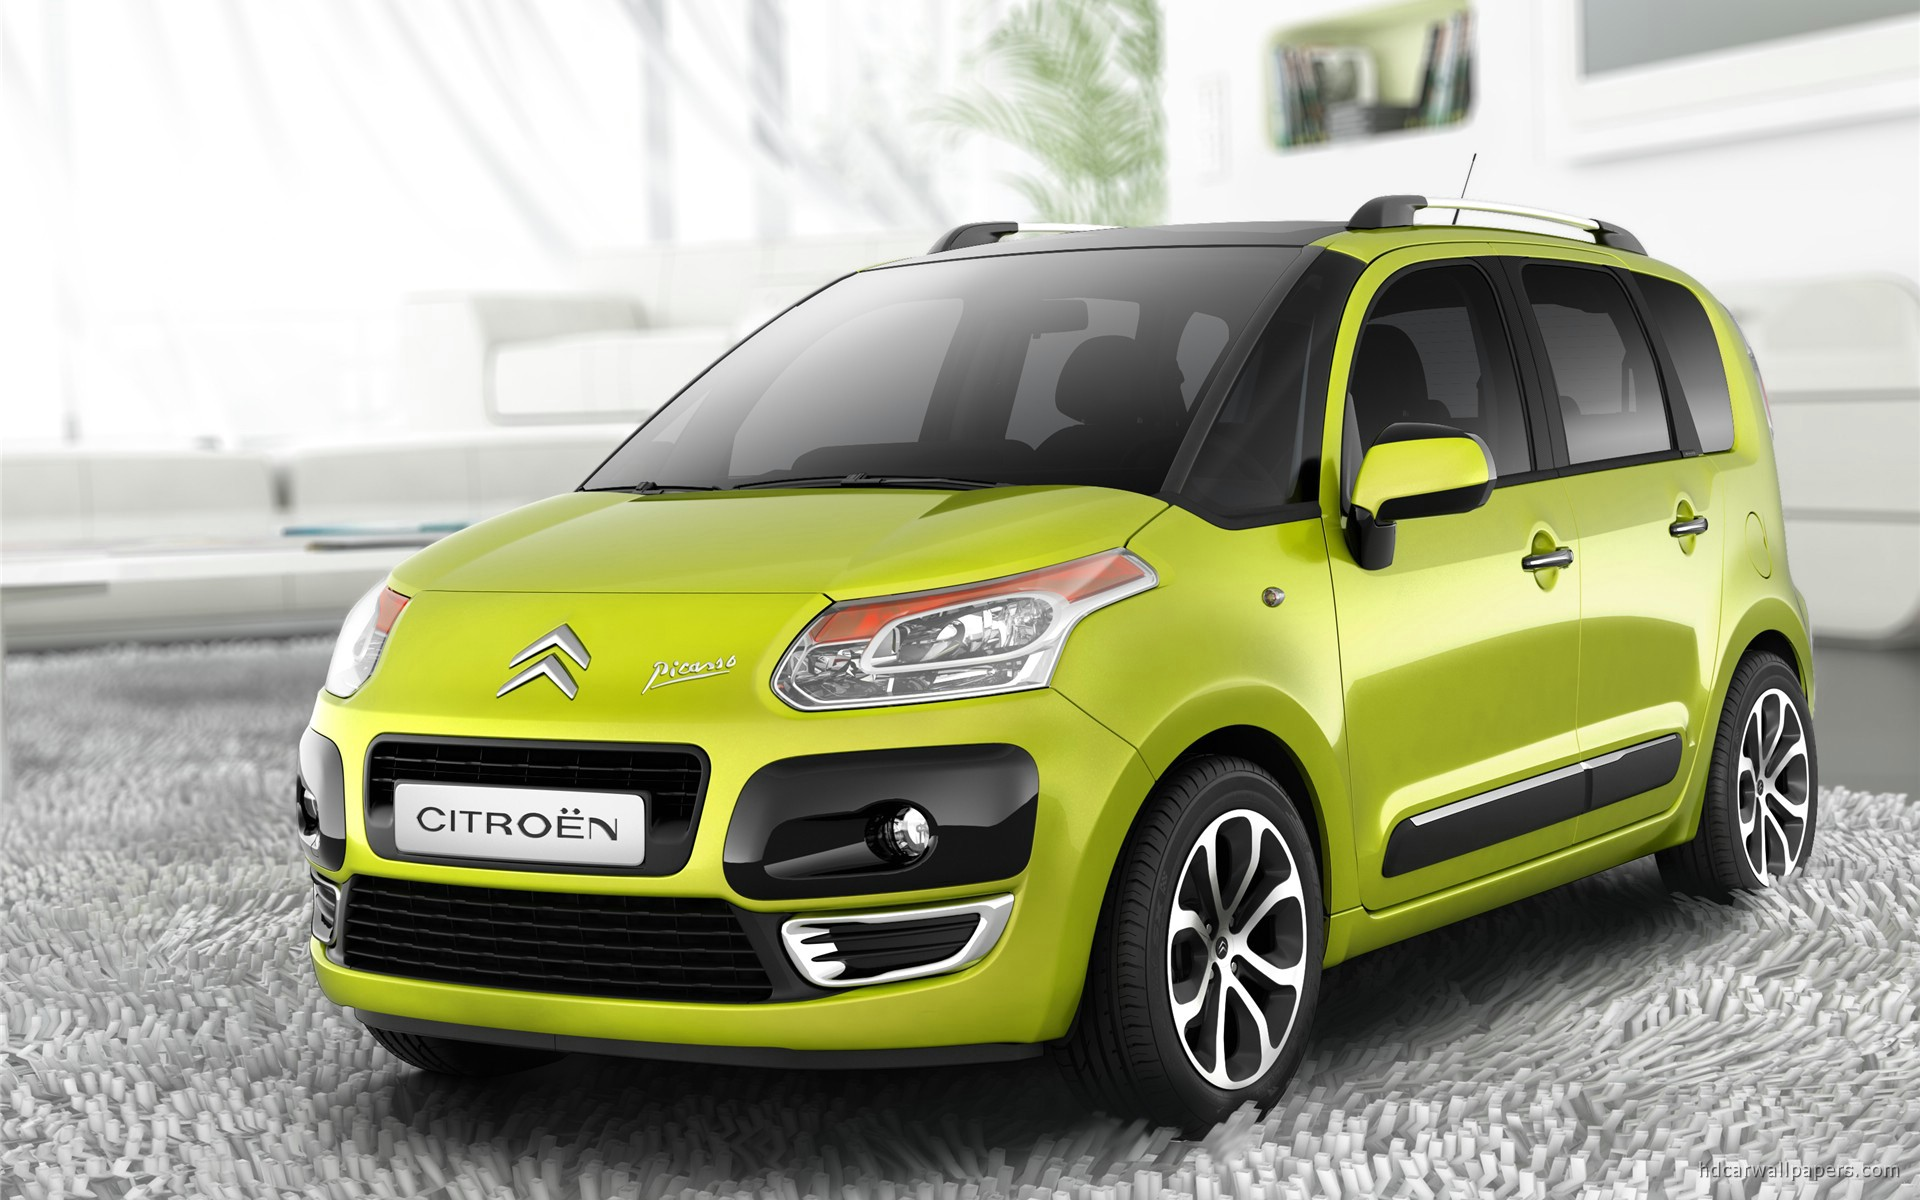 2009 citroen c3 picasso wallpaper hd car wallpapers. Black Bedroom Furniture Sets. Home Design Ideas